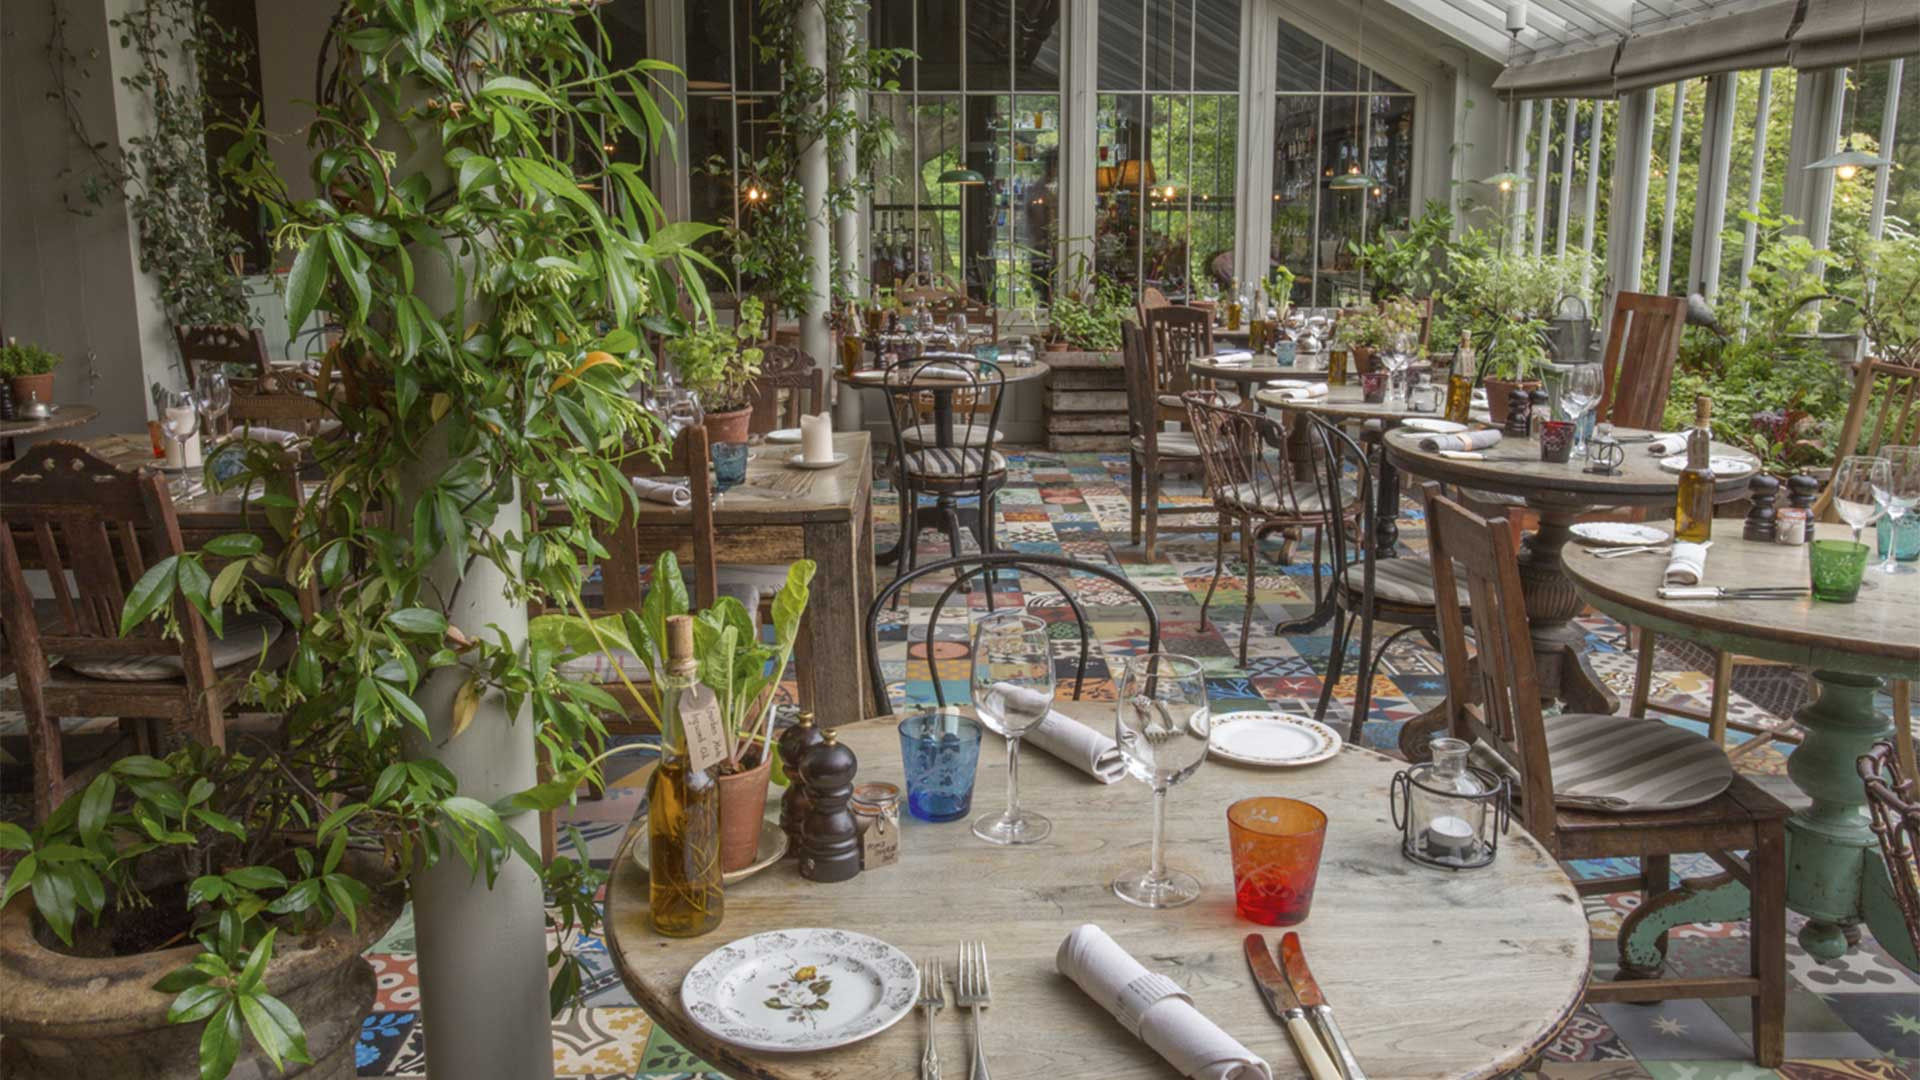 The conservatory dining room at The Pig at Brockenhurst, in the New Forest